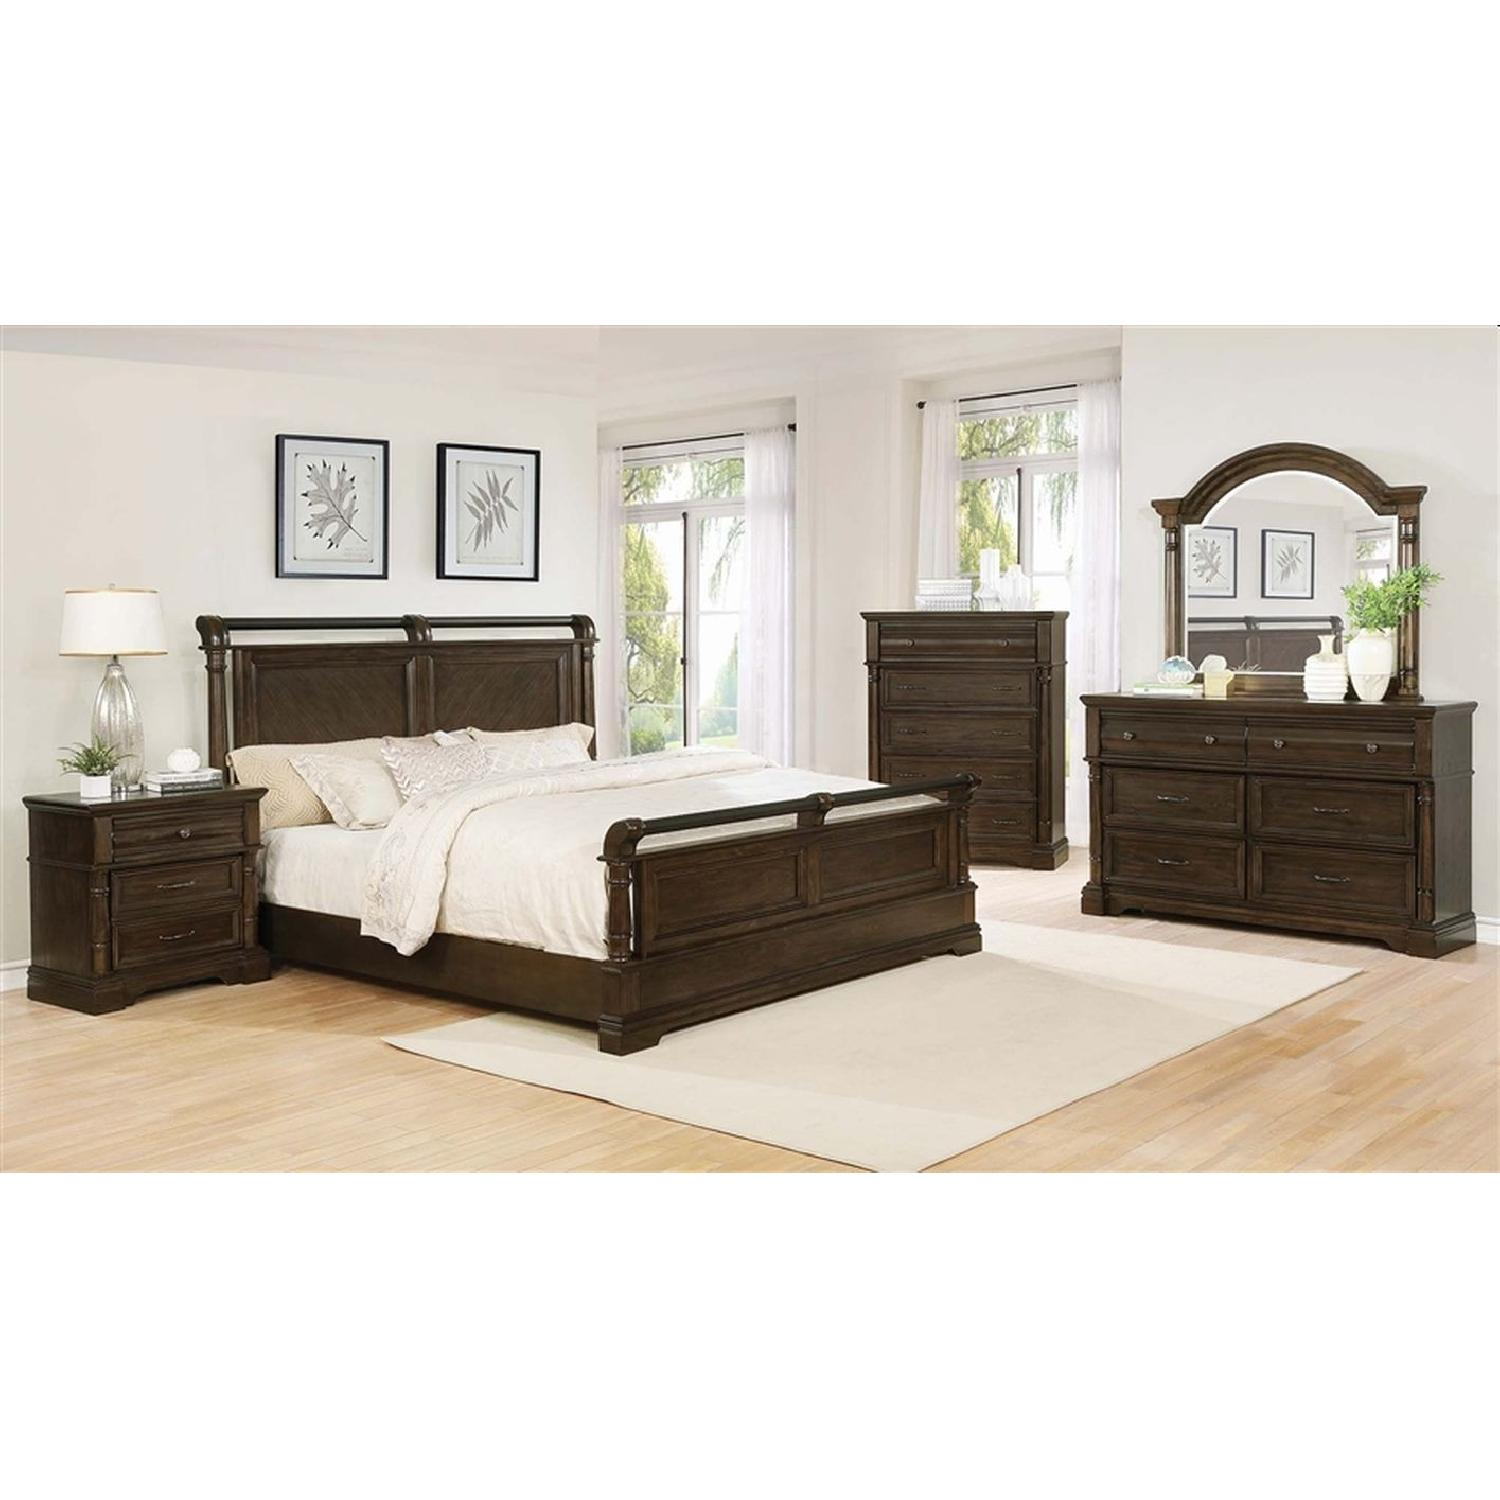 Classic Style Queen Bed in Heirloom Brown Wood Finish - image-1